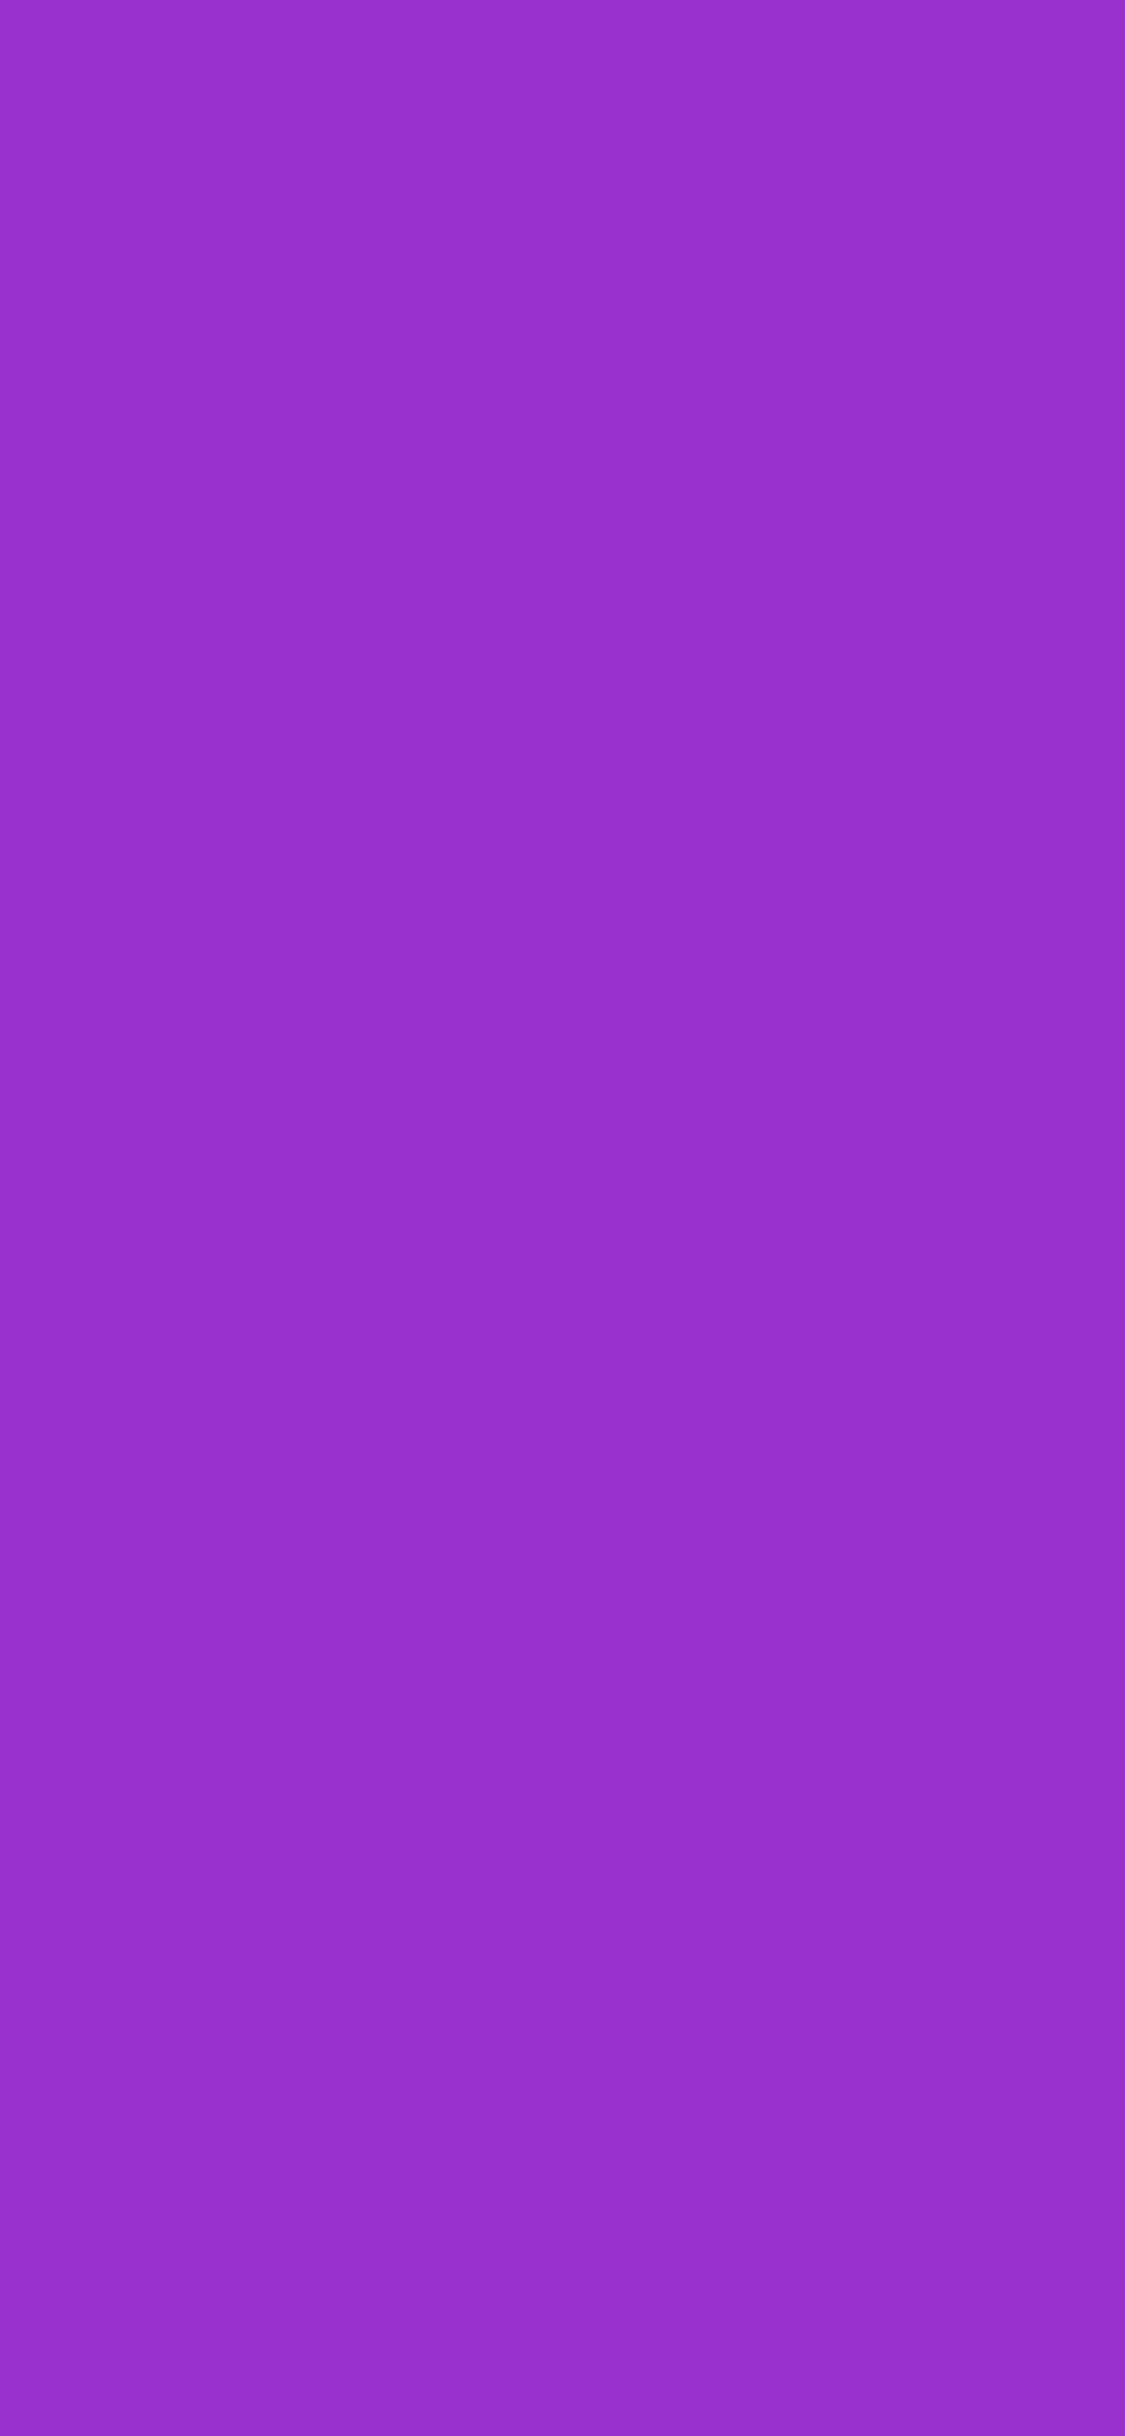 1125x2436 Dark Orchid Solid Color Background